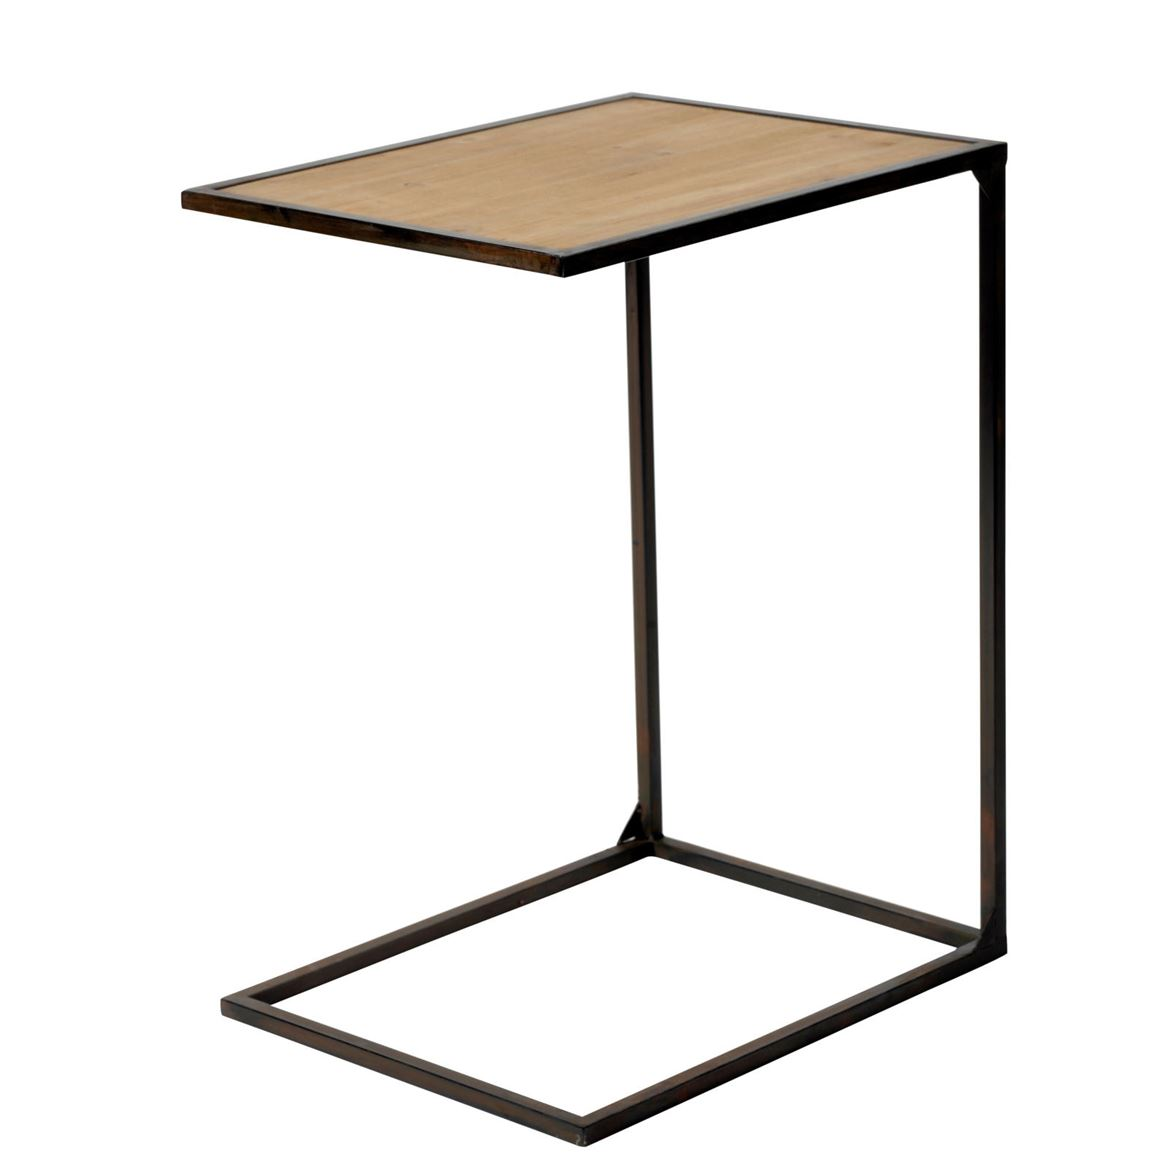 EDGE Table d'appoint_584101_2.jpg